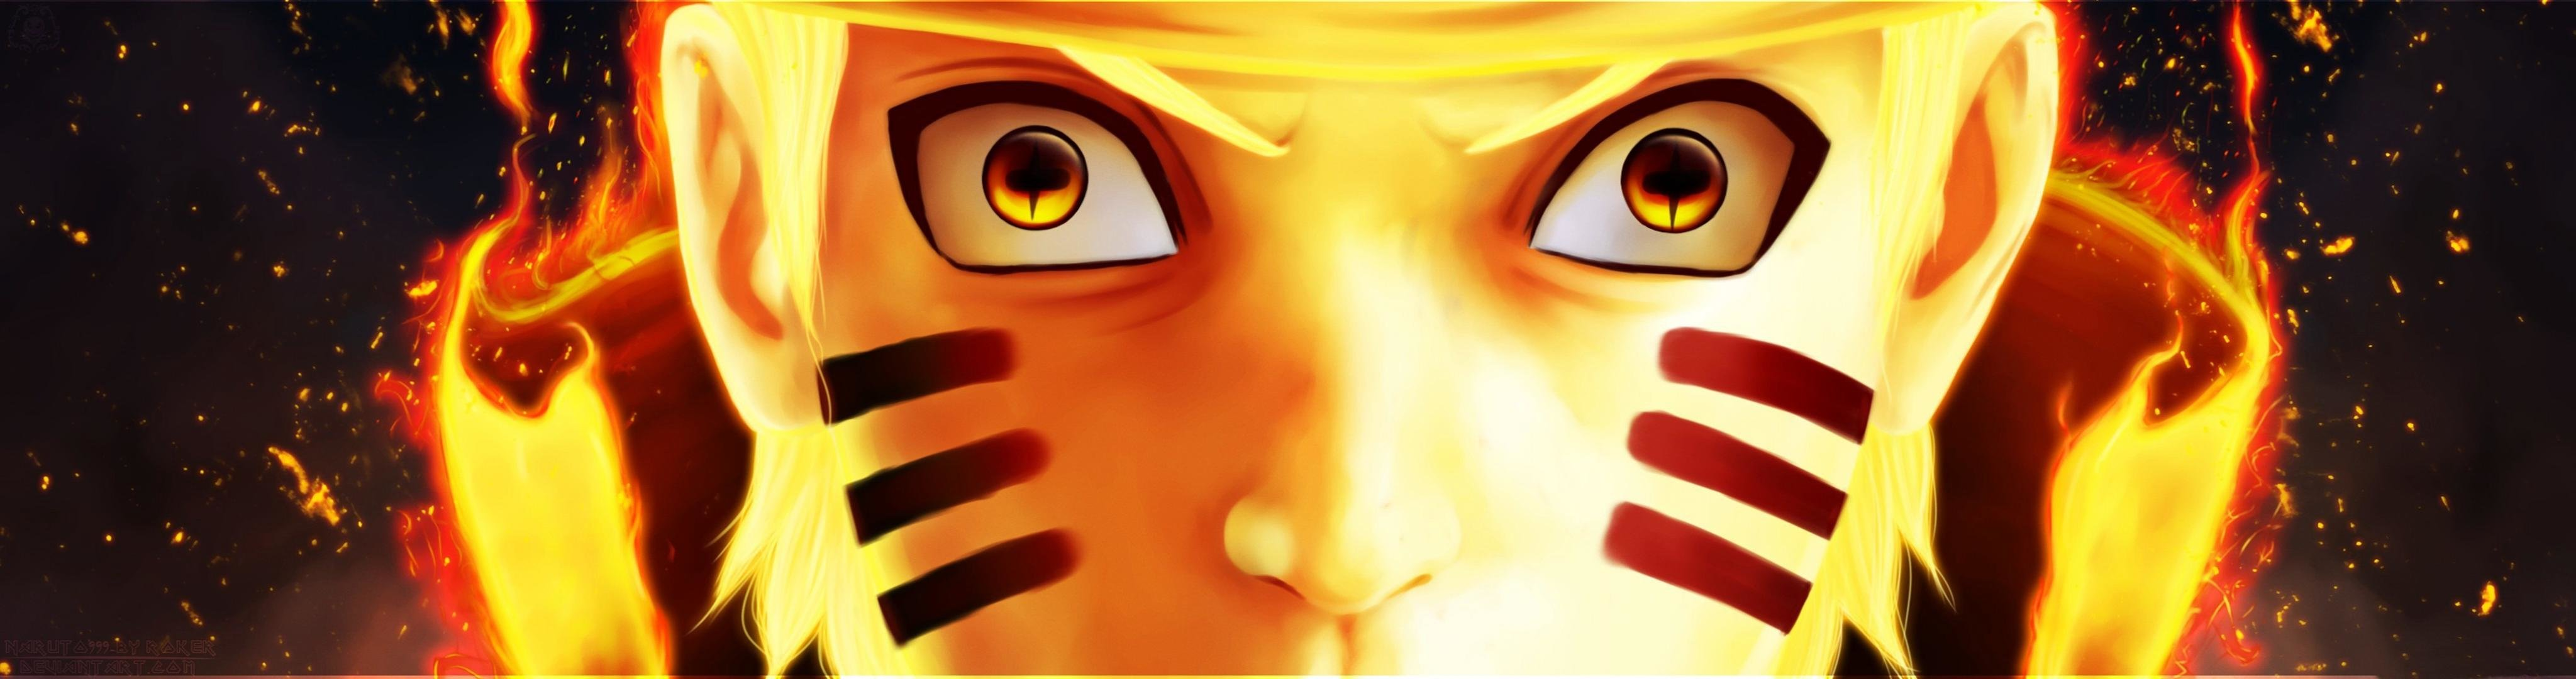 Awesome Naruto Uzumaki free background ID:395611 for dual screen 4096x1080 desktop